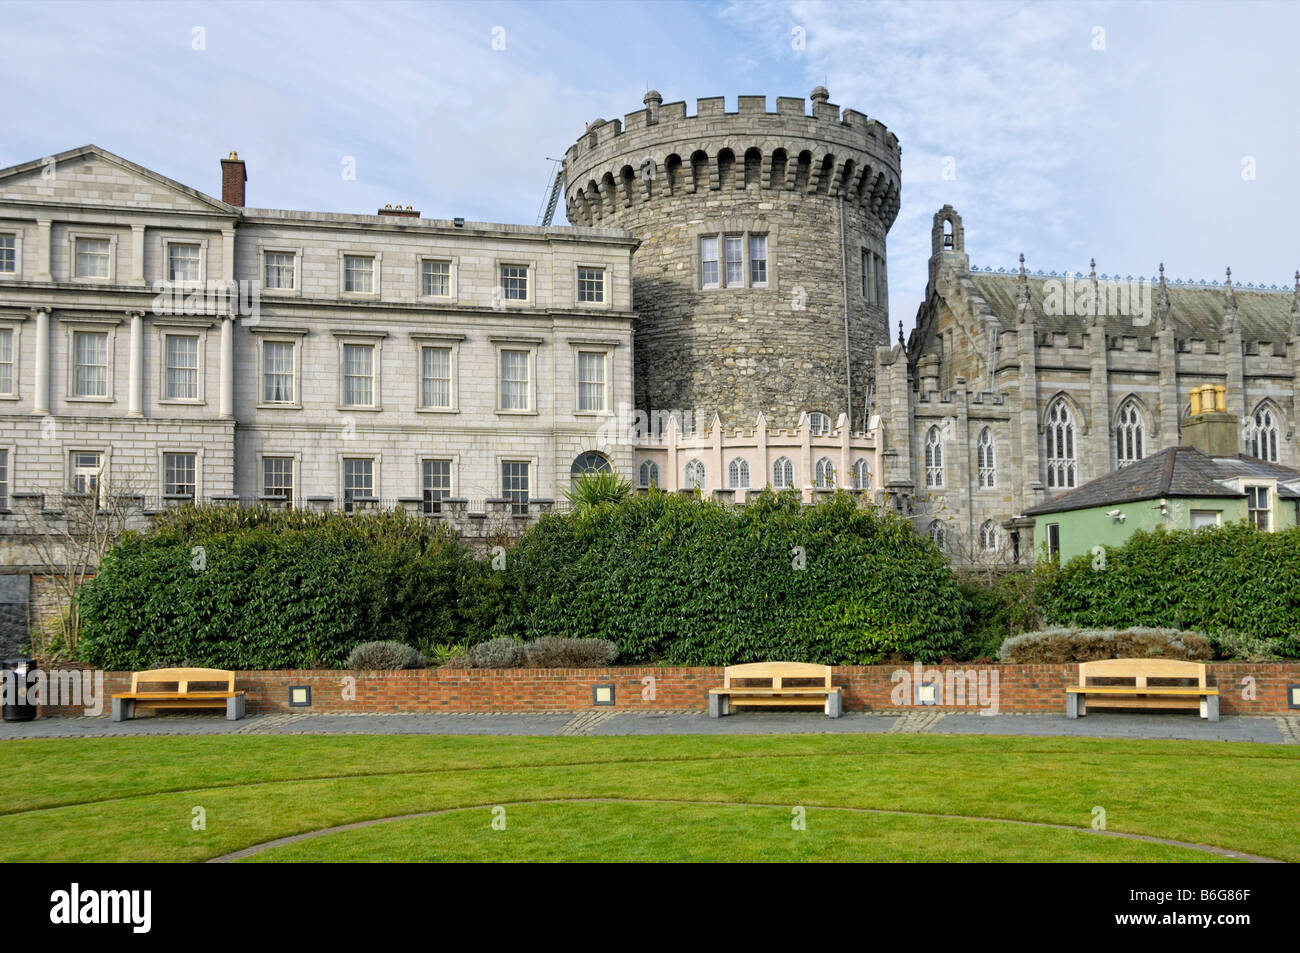 State apartments Norman tower Chapel Royal Dublin castle - Stock Image